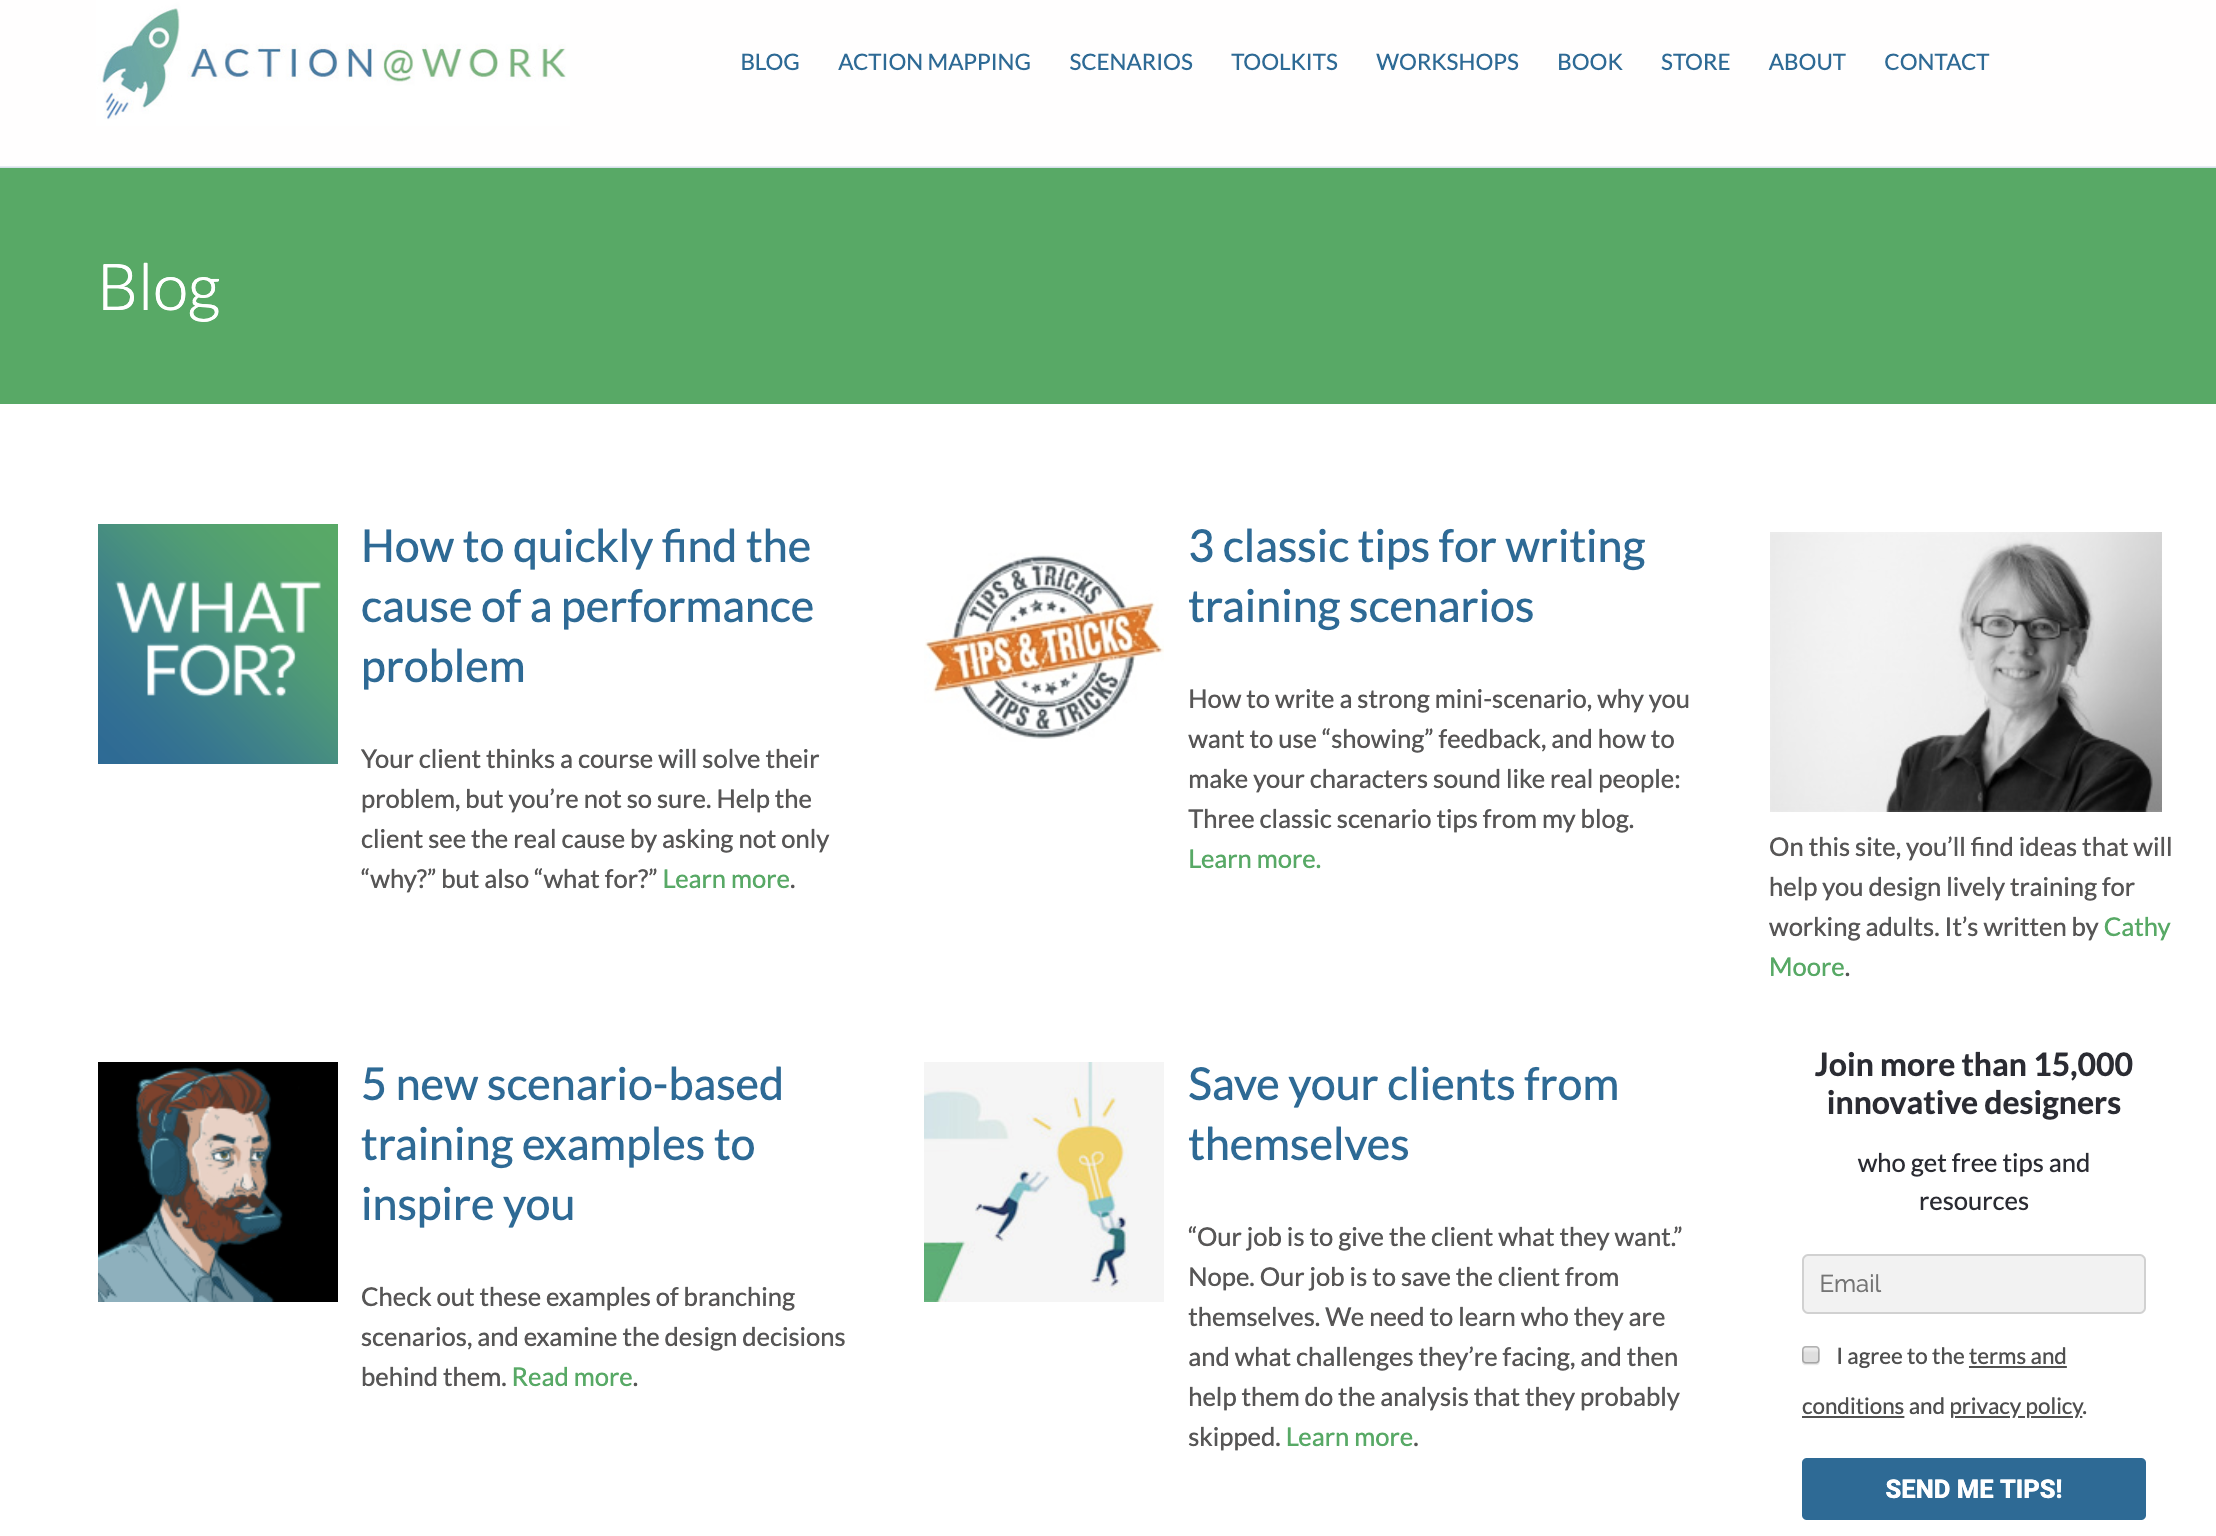 Cathy Moore eLearning Resources Guide